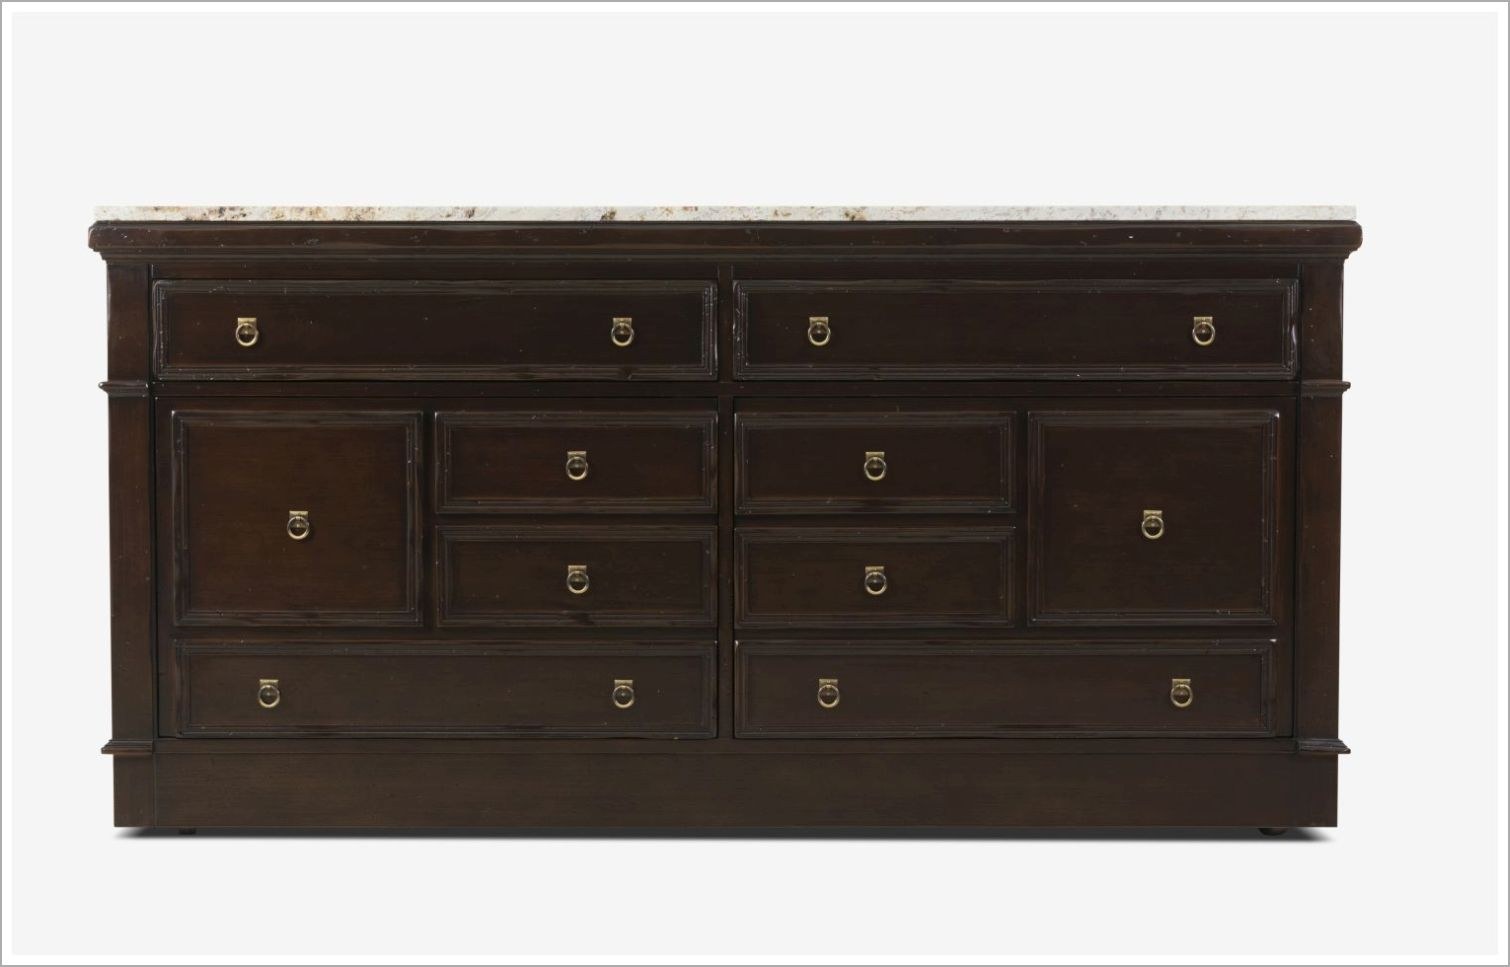 Hospitality Sideboard with Concealed Casters and Distressed Finish